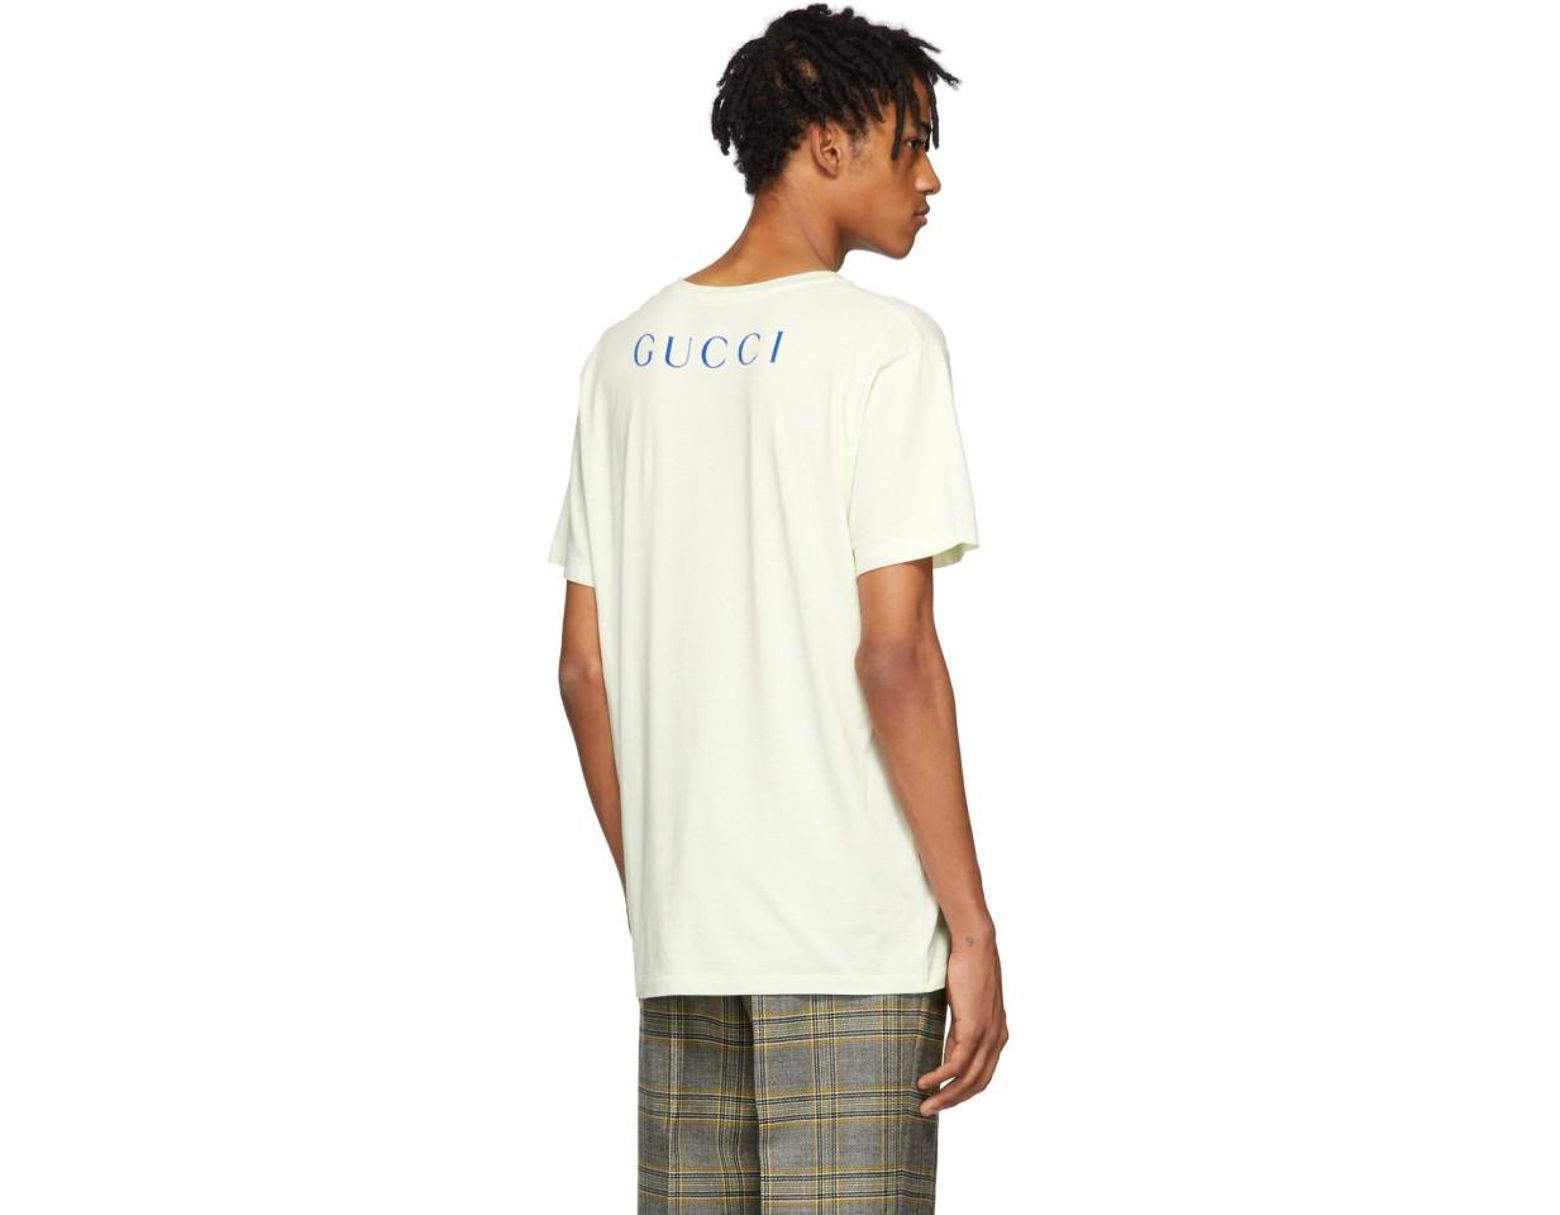 ed83fd986 Gucci White Paramount T-shirt in White for Men - Lyst